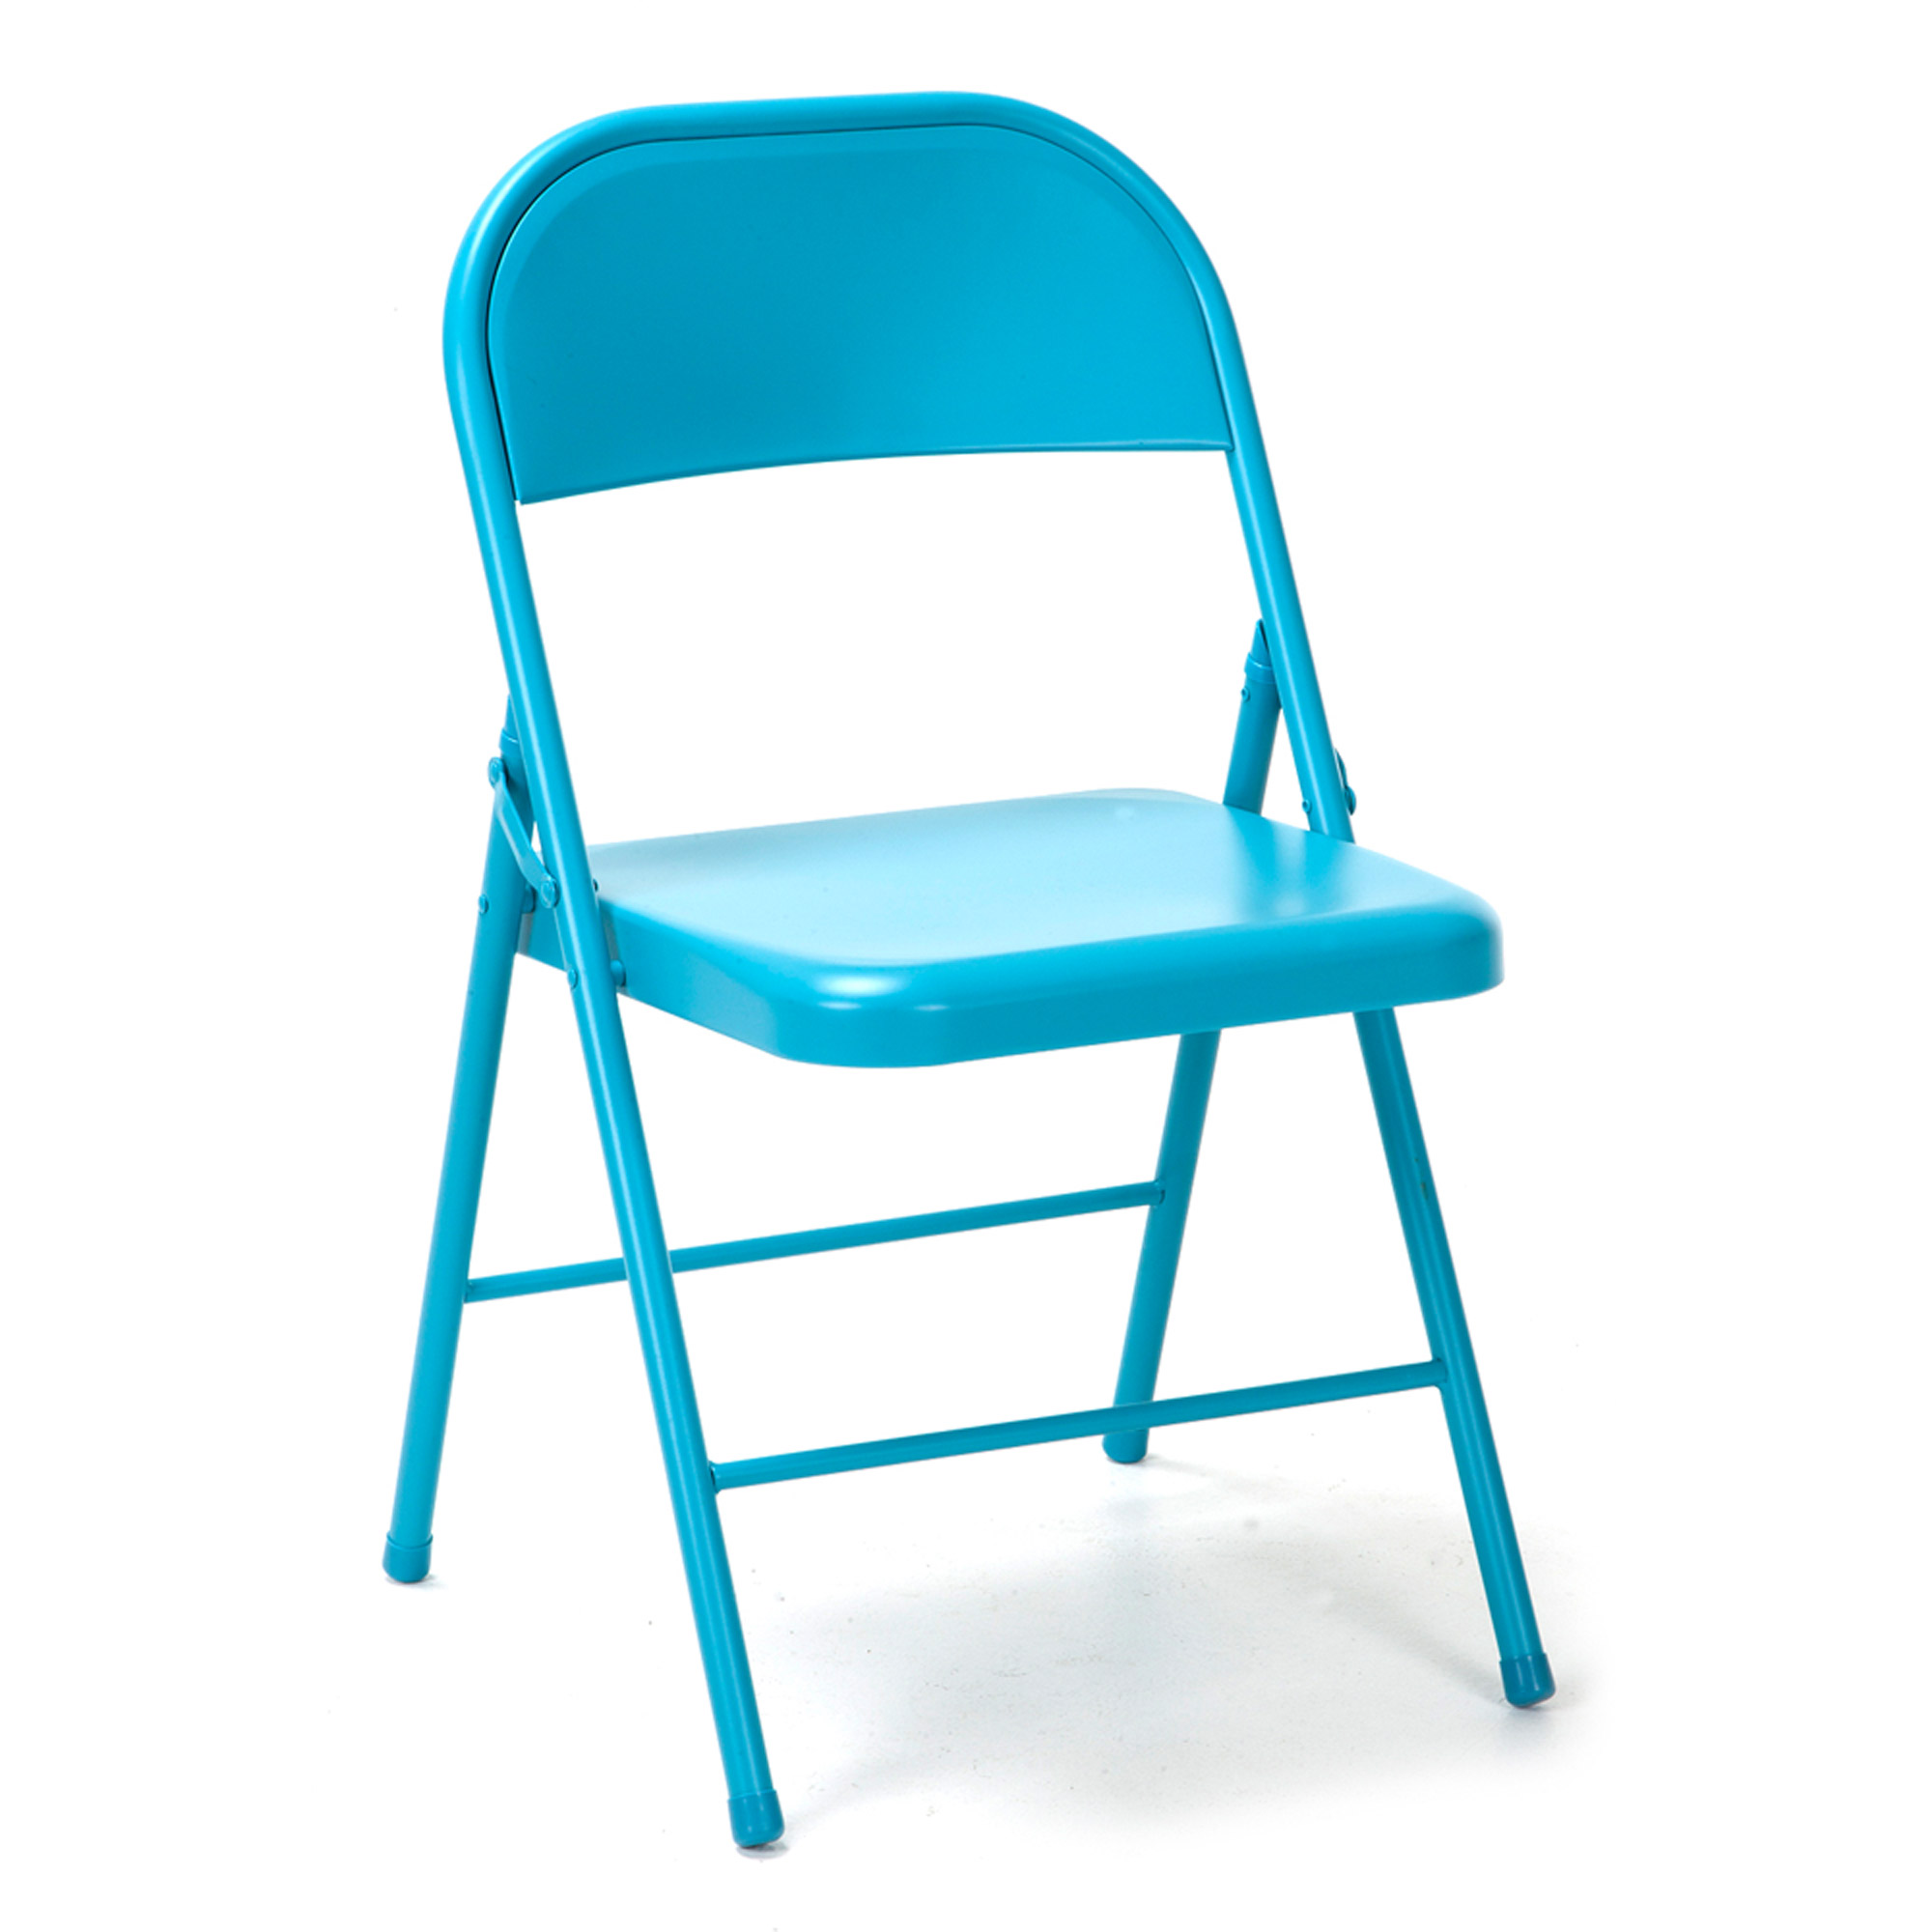 Novogratz All Steel Folding Chair, 2 pack, Multiple Colors - Walmart.com